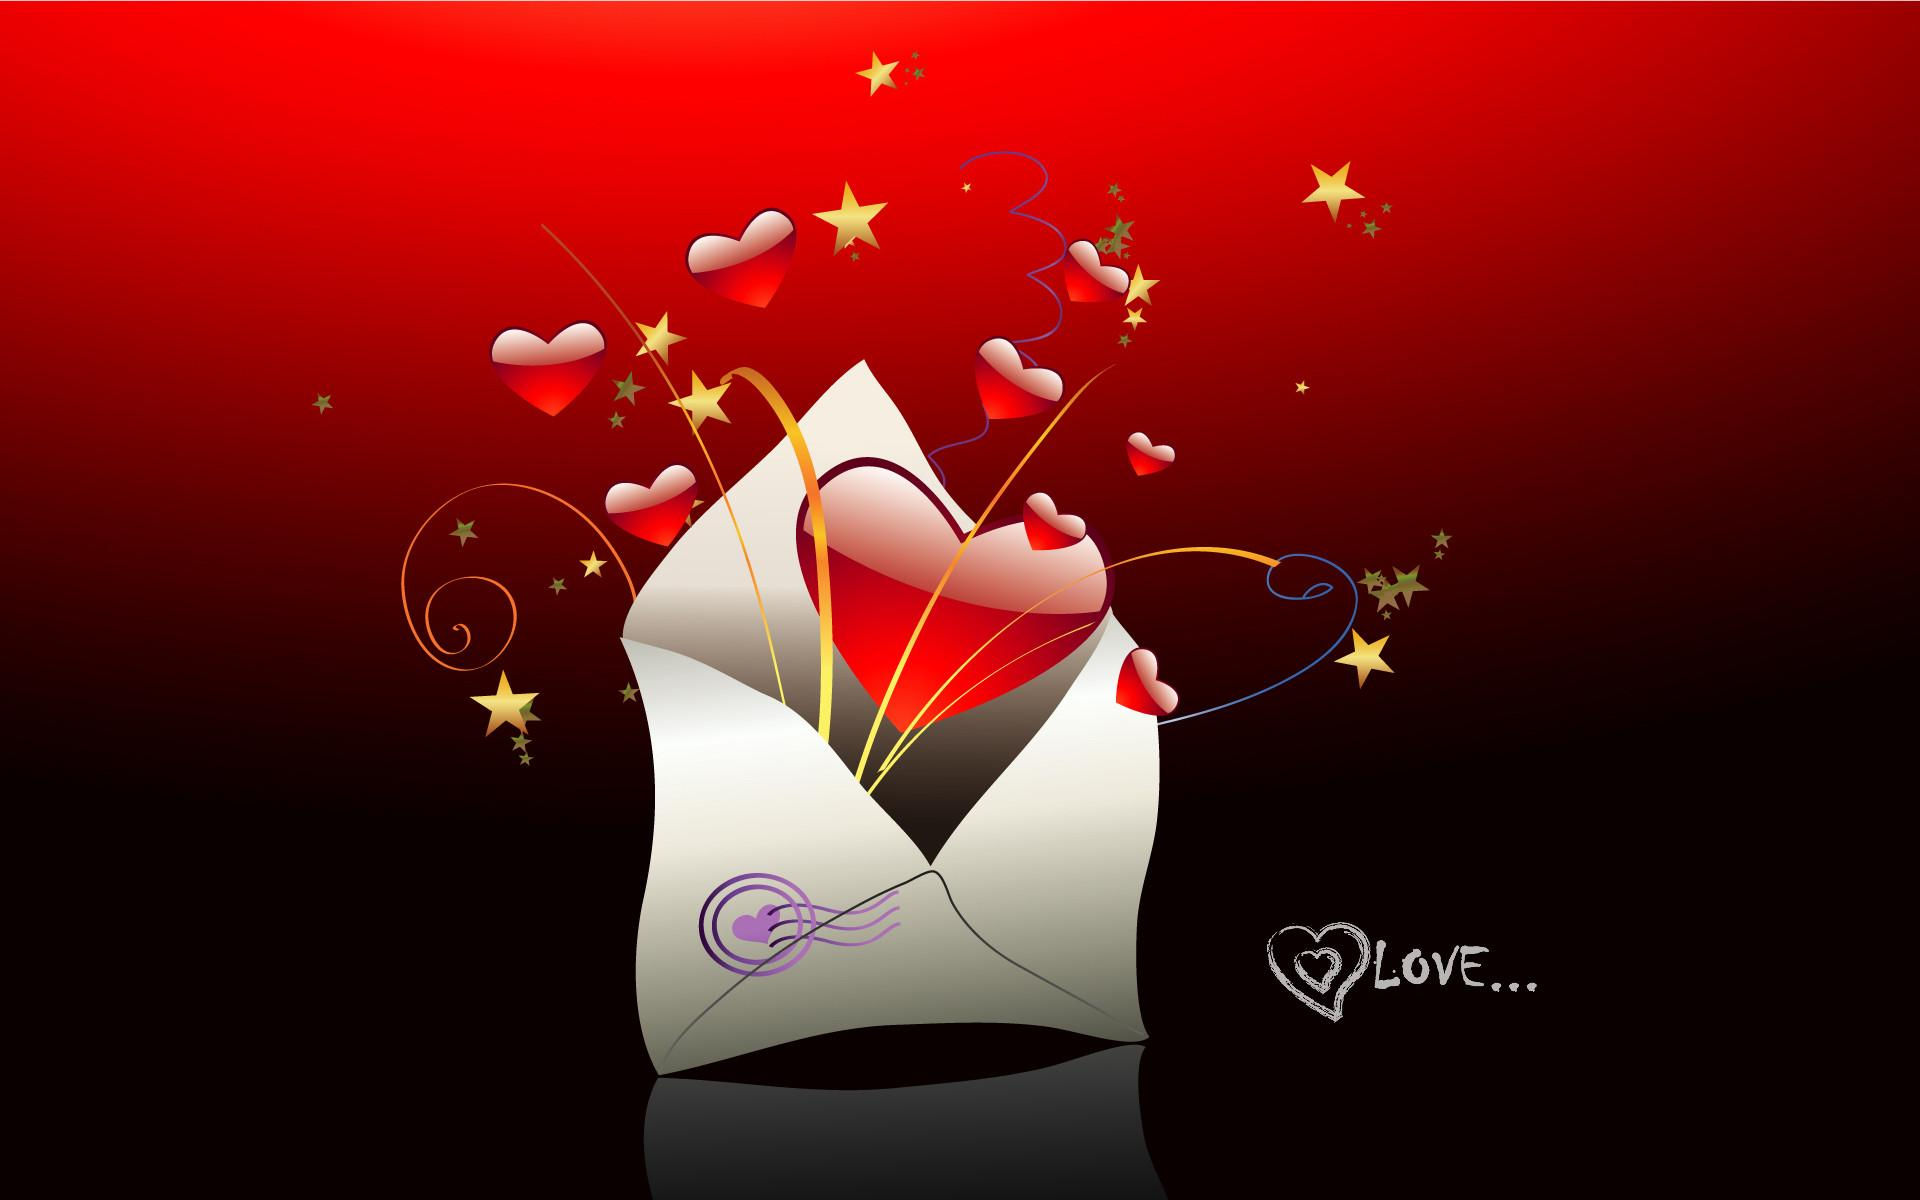 Love You Wallpapers 9573 Hd Wallpapers in Love   Imagescicom 1920x1200